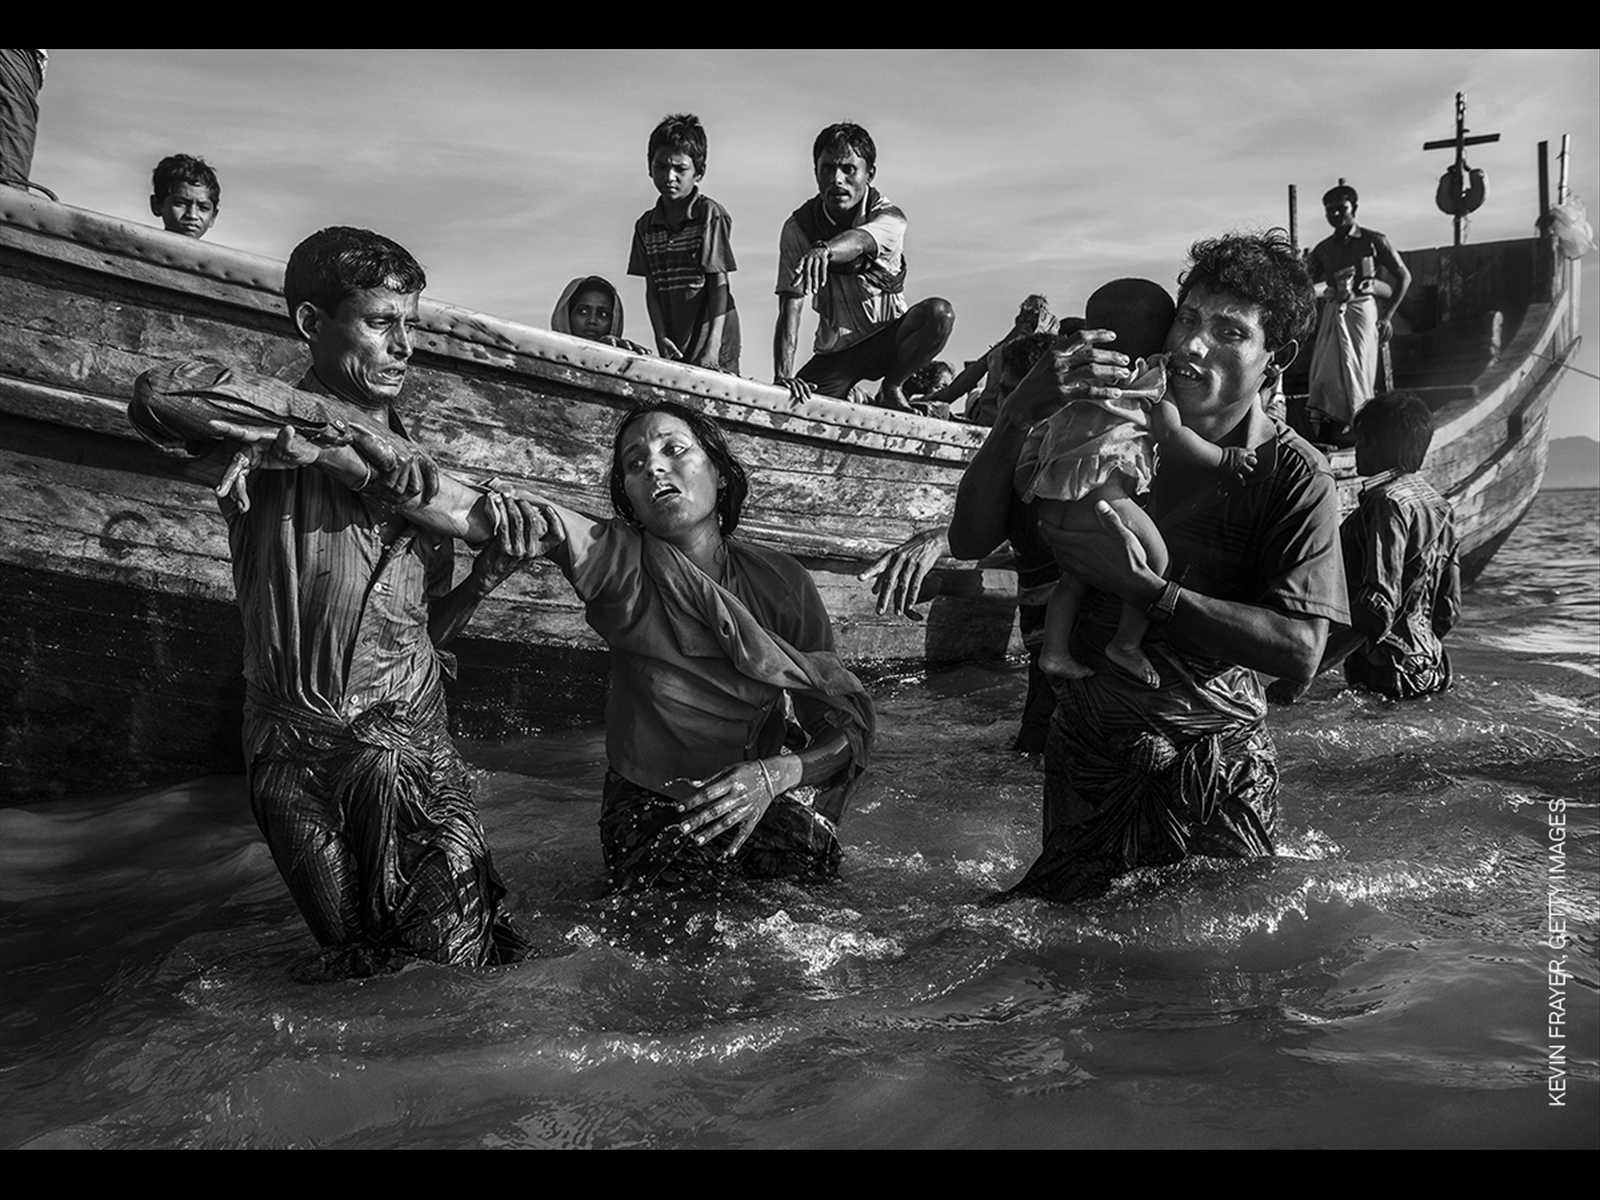 Getty Images. General News second prize stories